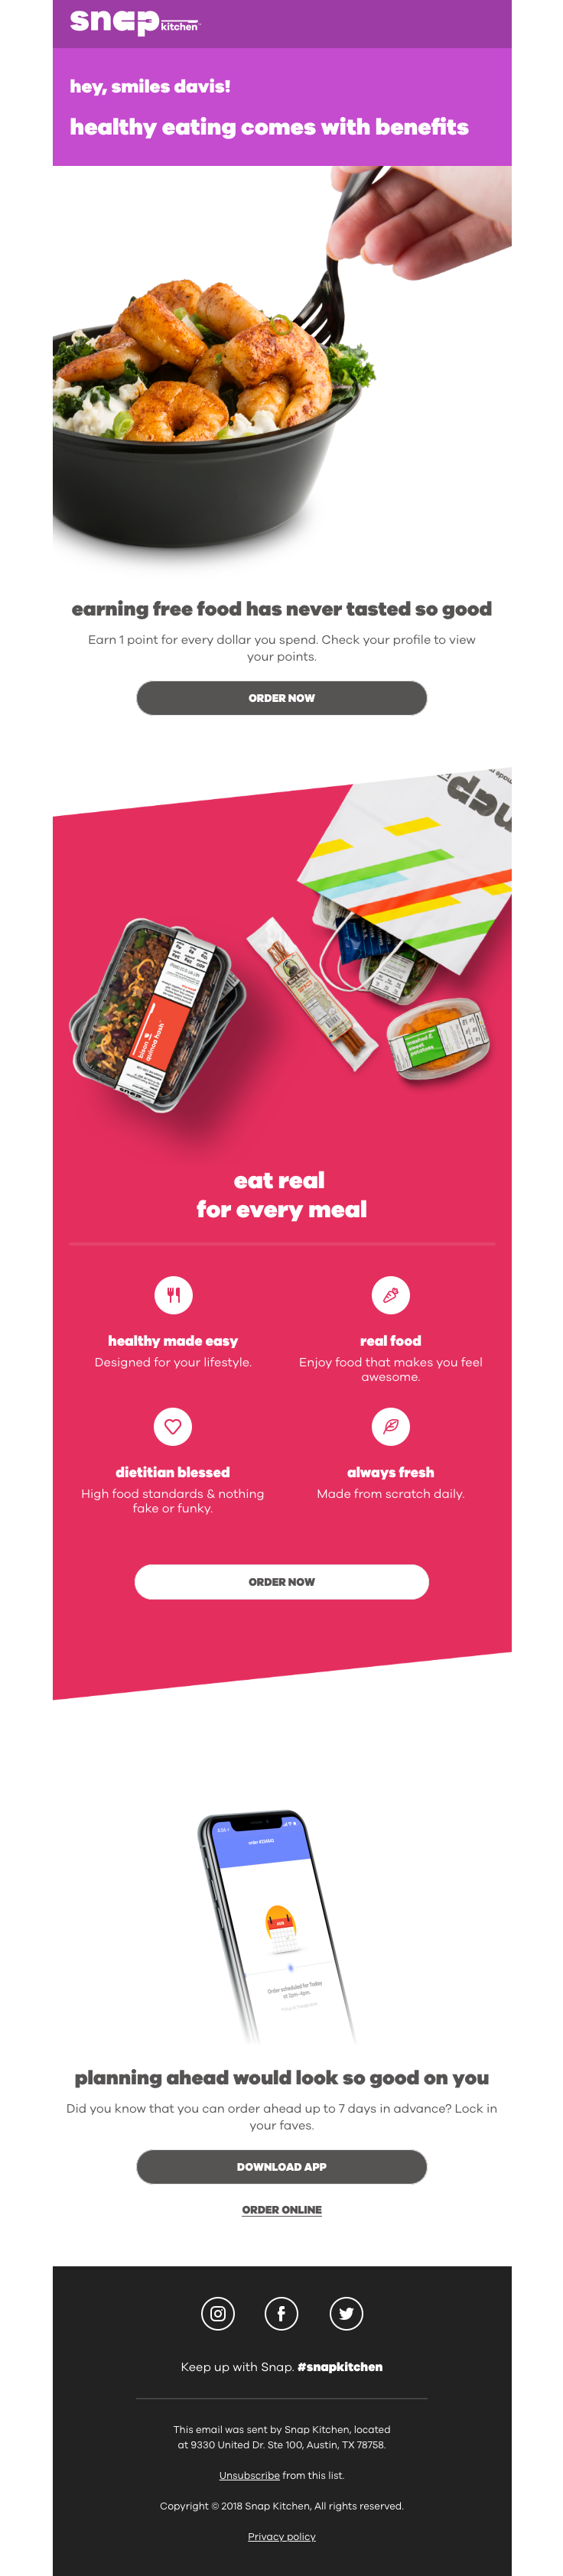 @snapkitchen sent this email with the subject line: Our